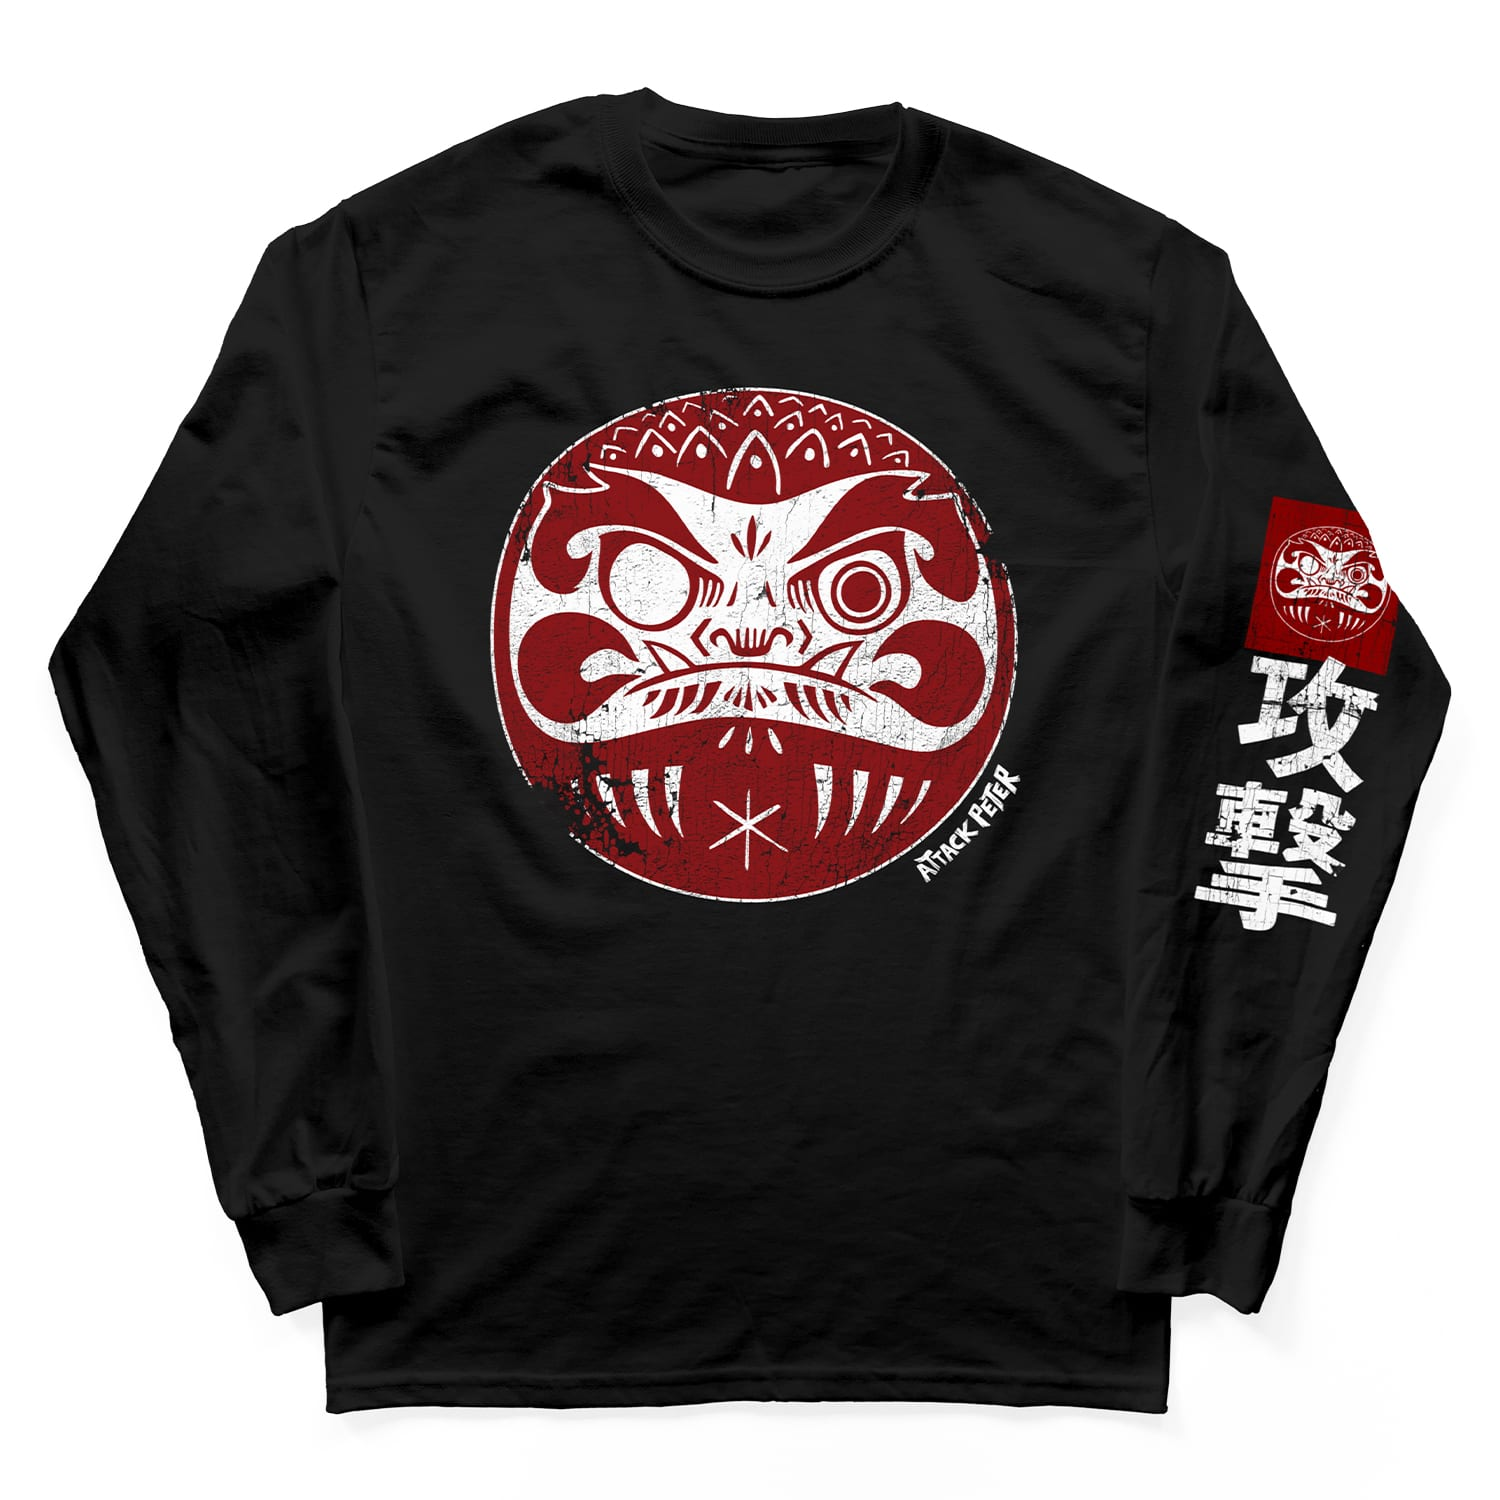 "Attack Peter ""Daruma"" Long Sleeve Shirt in Black"